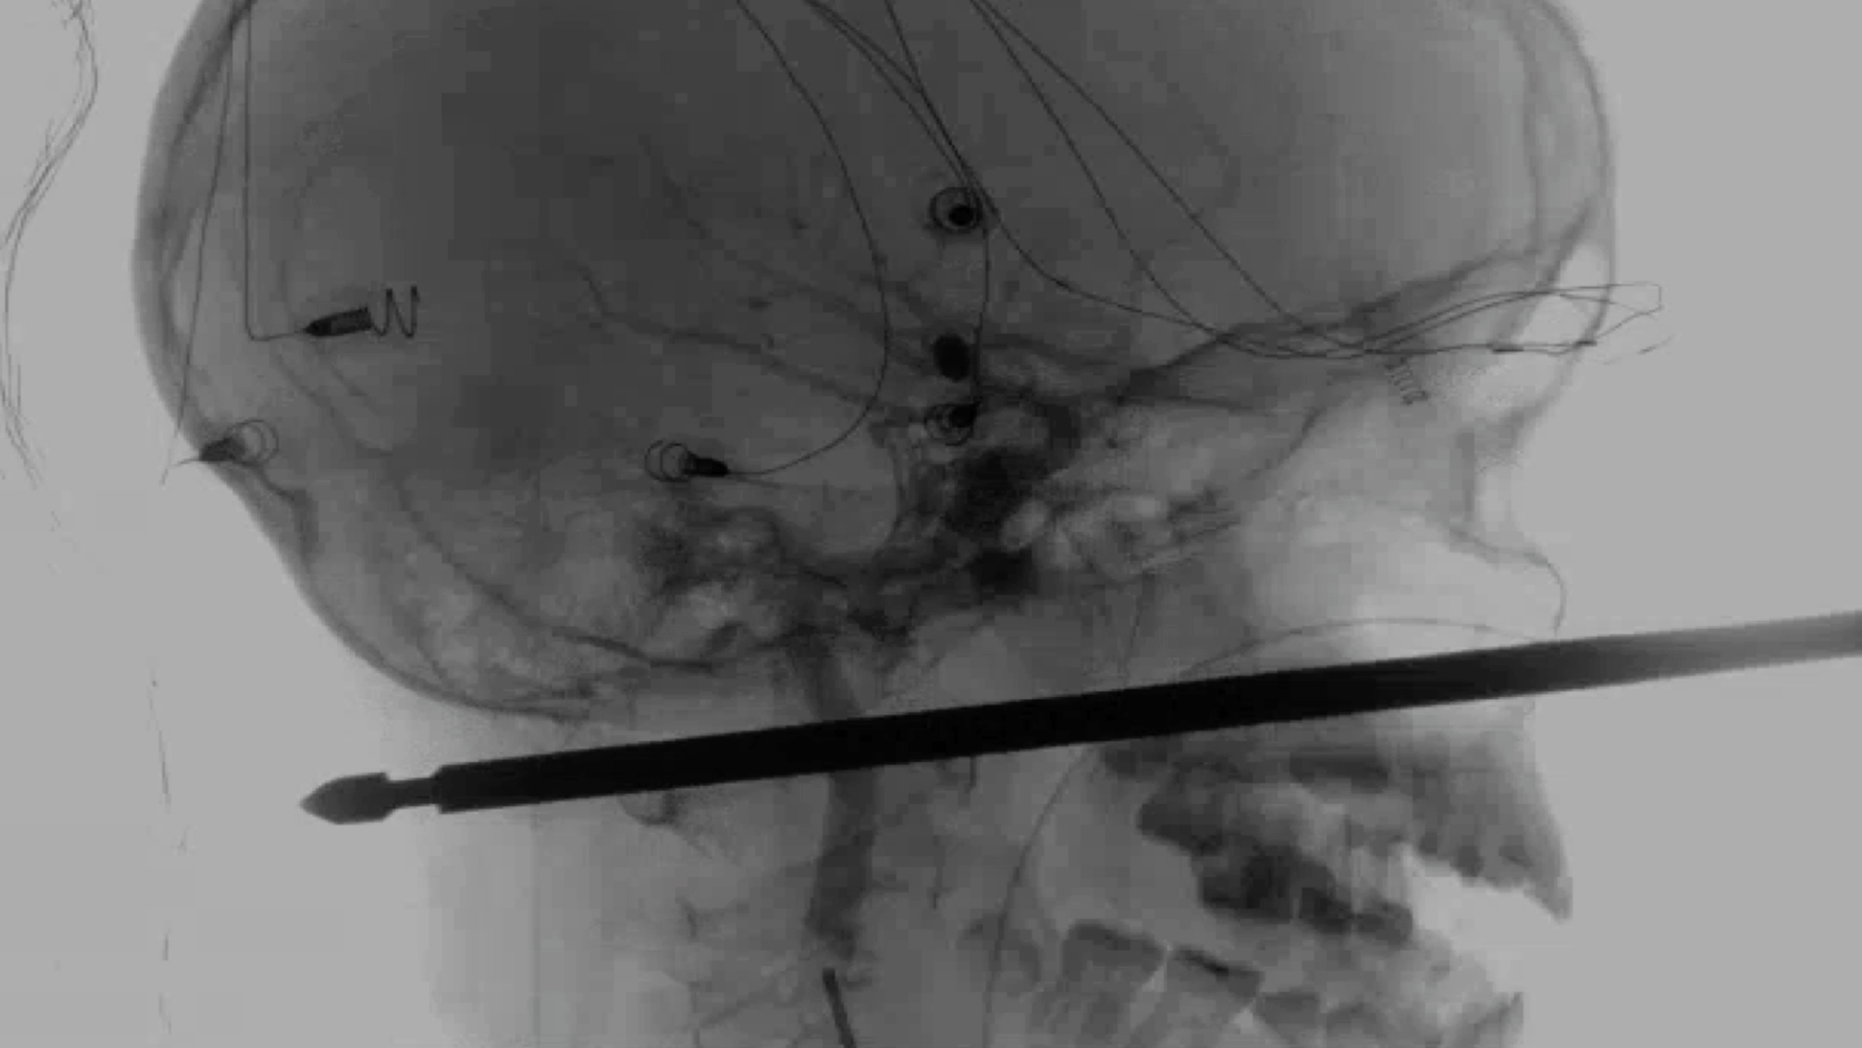 This X-ray provided by the Medical News Network shows a meat skewer impaled in the skull of Xavier Cunningham after an accident at his home Saturday, Sept. 8, 2018, in Harrisonville, Mo. Cunningham's experience began when yellow jackets attacked him in a tree house and he tumbled from the tree, landing on the skewer. The skewer had completely missed the boy's eye, brain, spinal cord and major blood vessels and doctors think he could recover completely. (Medical News Network via AP)